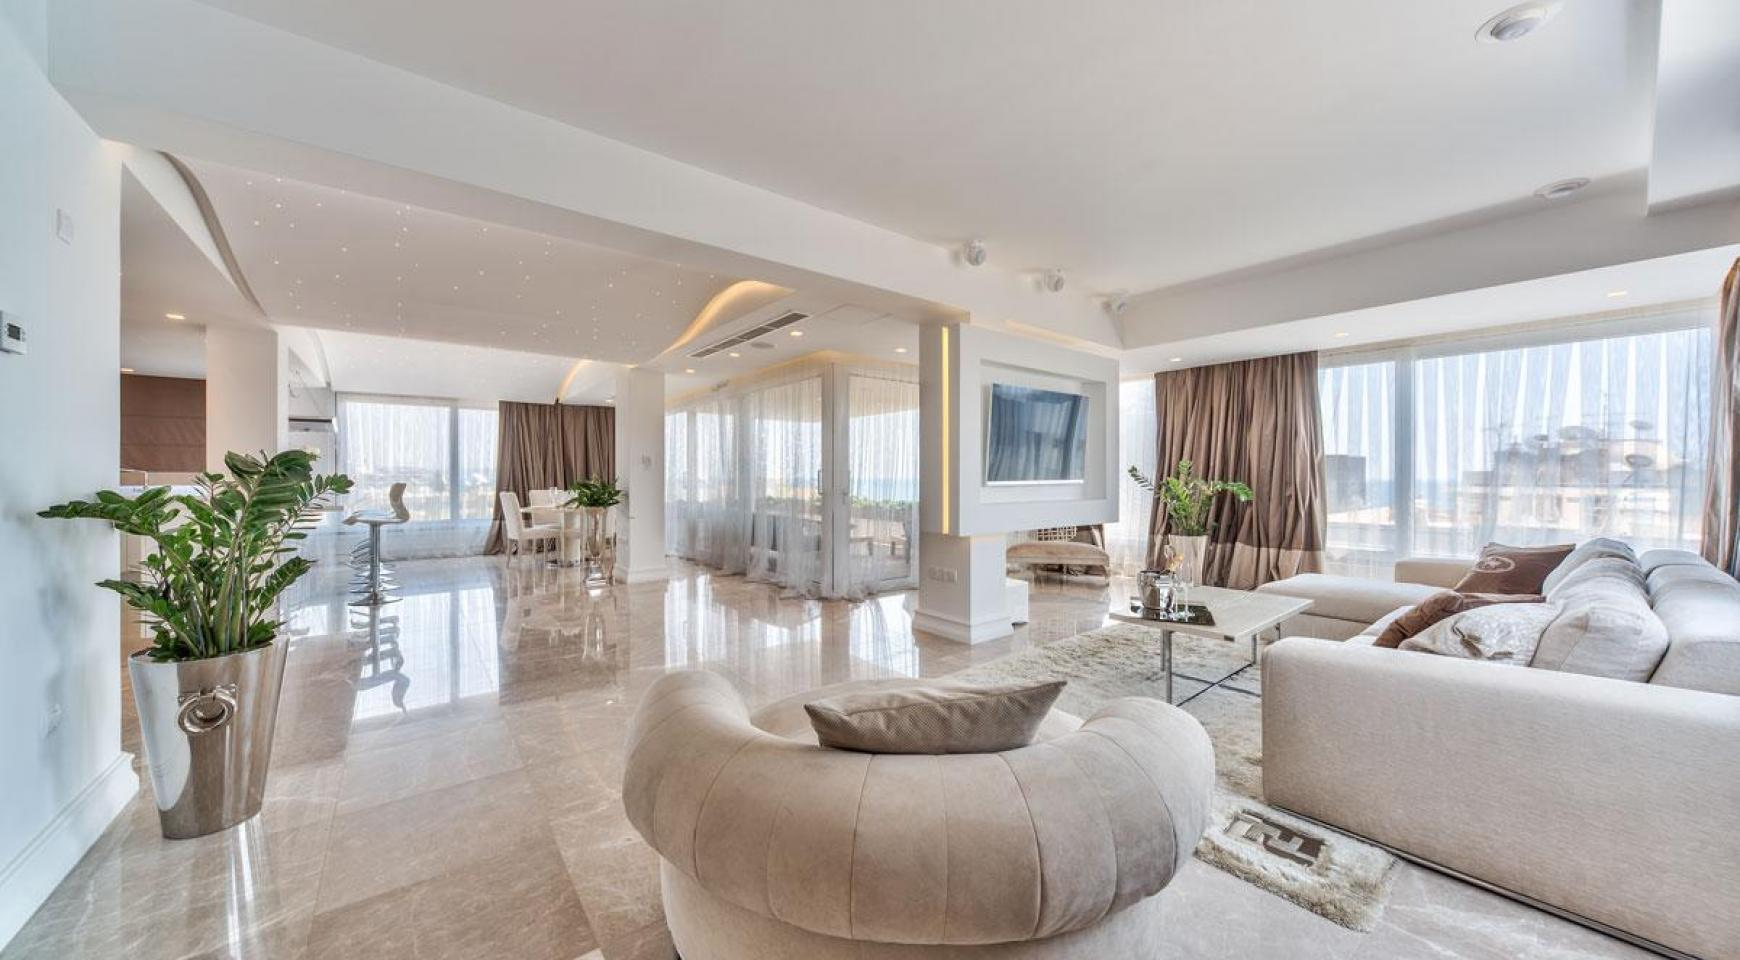 Malibu Residence. New Modern 3 Bedroom Apartment 202 in a Luxury Complex - 11